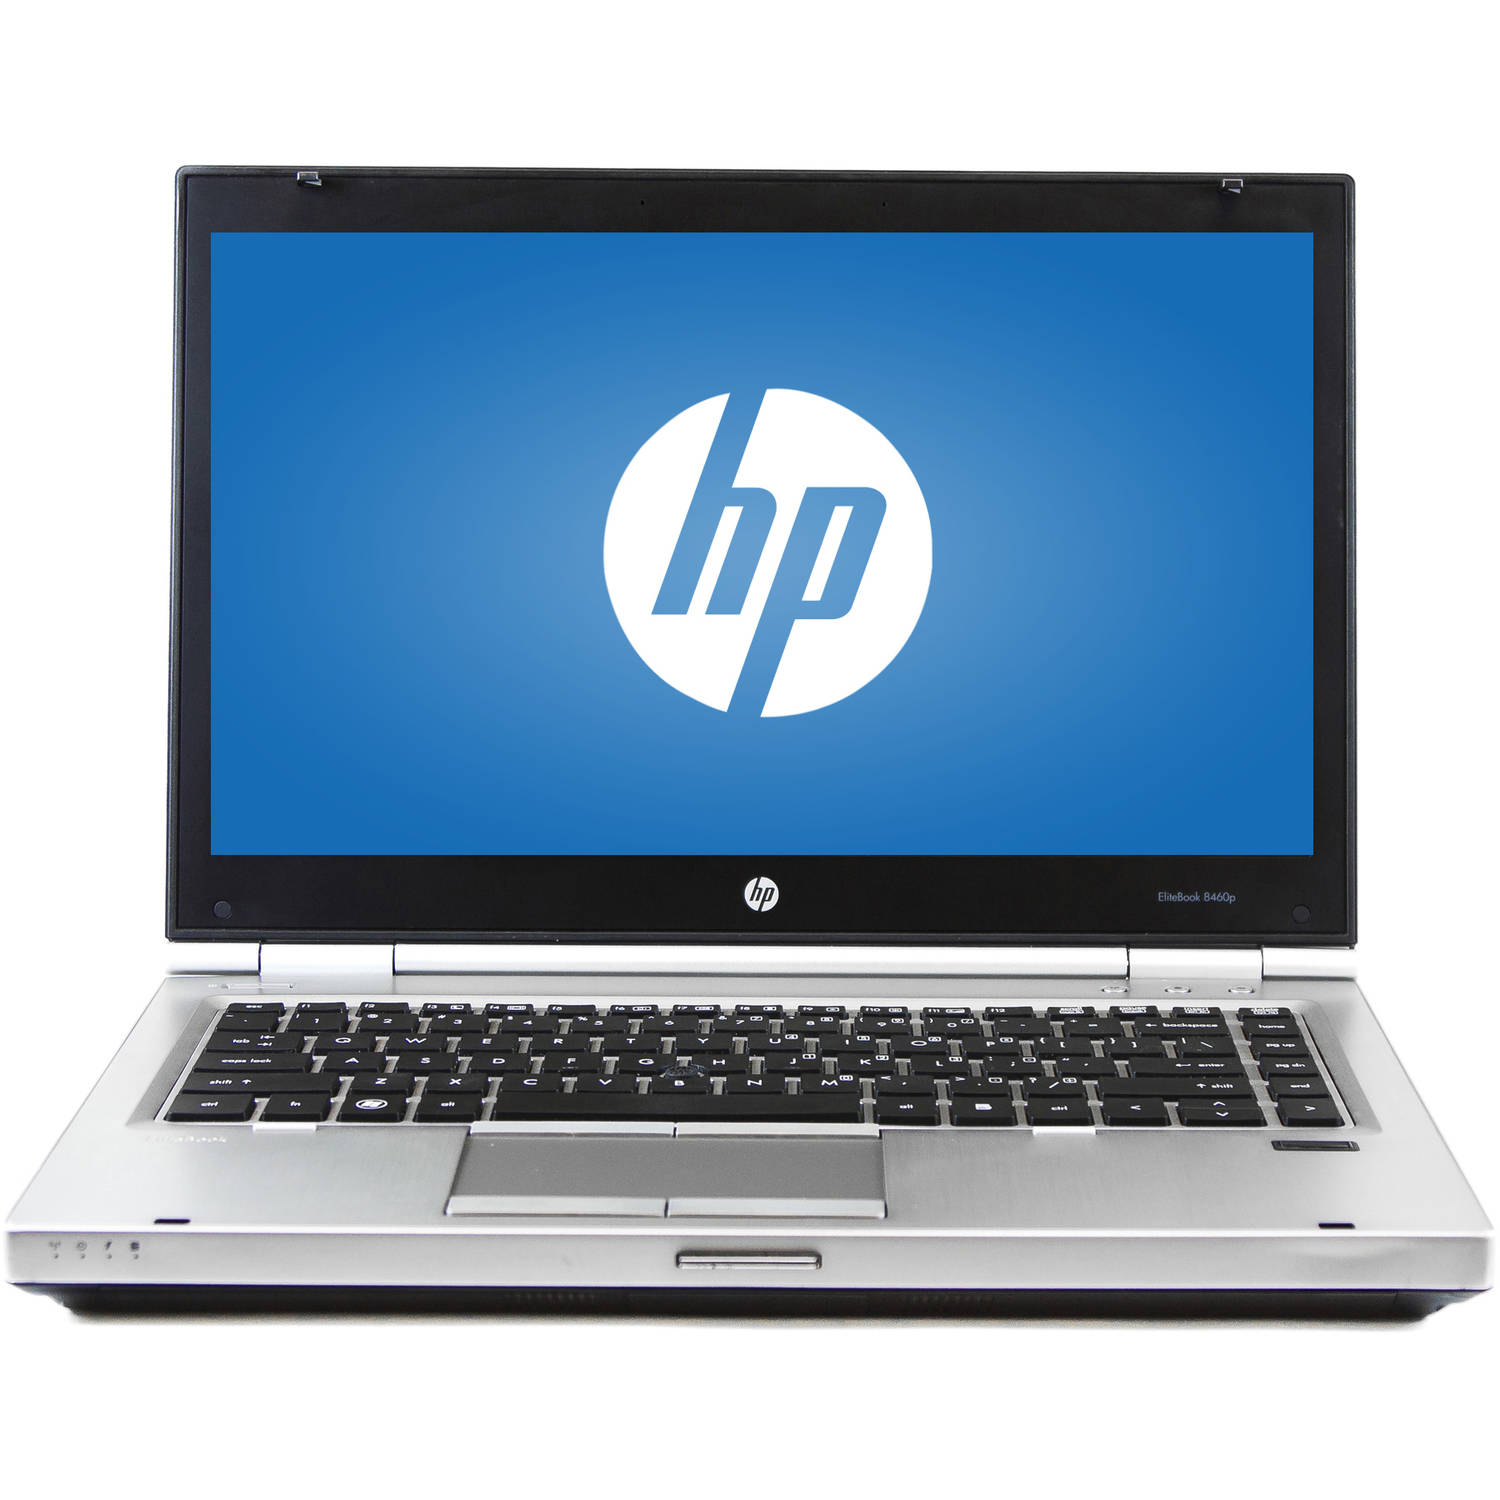 "Refurbished HP Silver 14"" 8460P Laptop PC with Intel Core i5-2520M Processor, 16GB Memory, 256GB Solid State Drive and Windows 7 Professional 64-Bit"